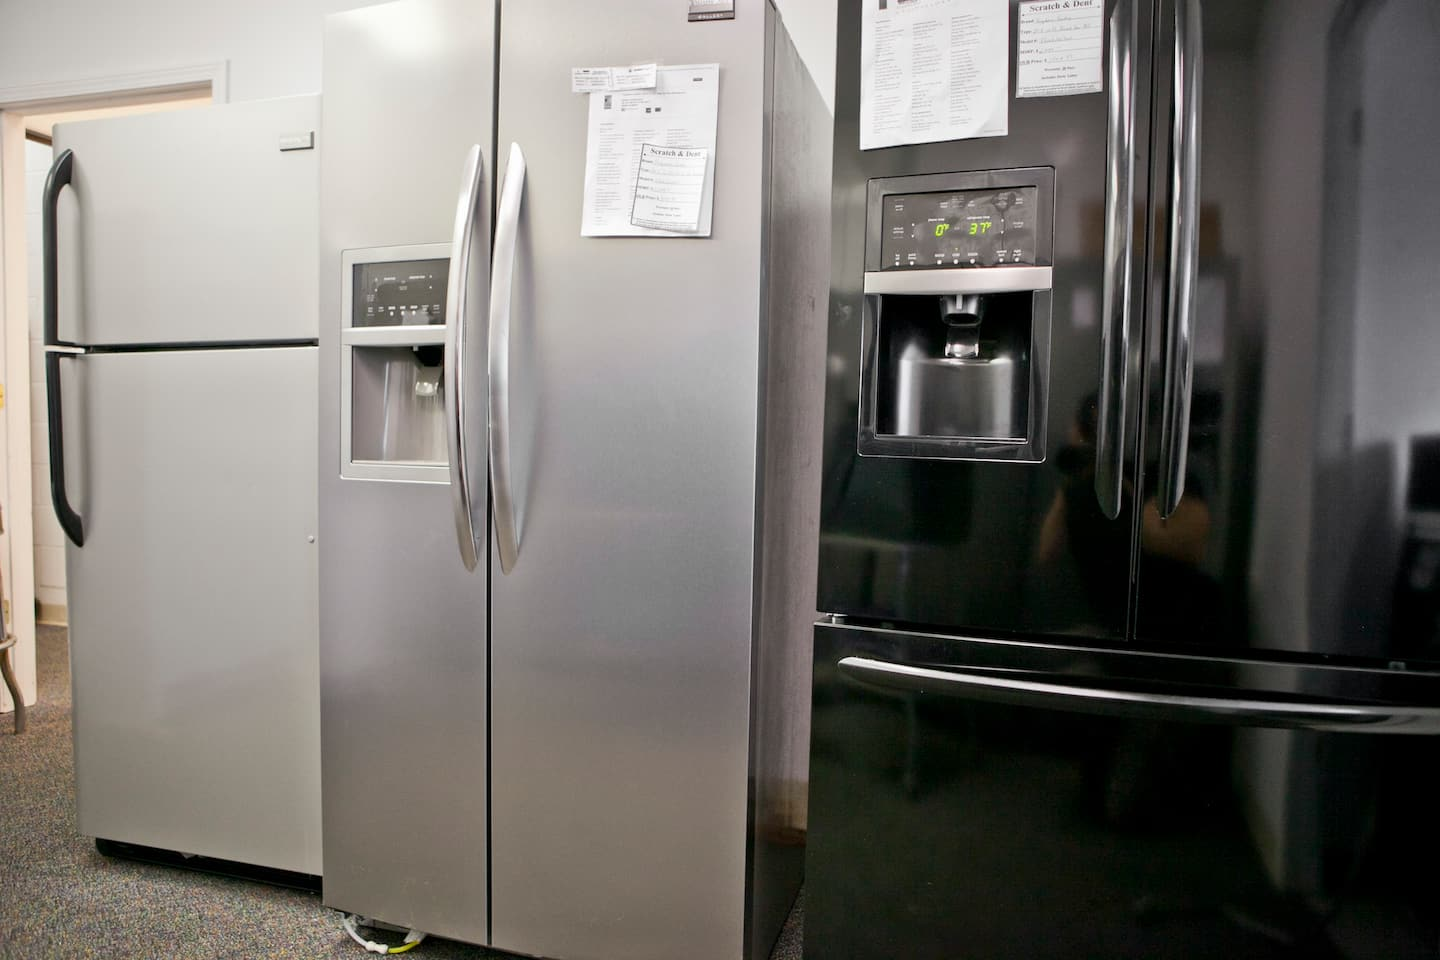 Average cost of new furnace and ac for home - White Stainless Steel And Black Refrigerators Photo By Brandon Smith